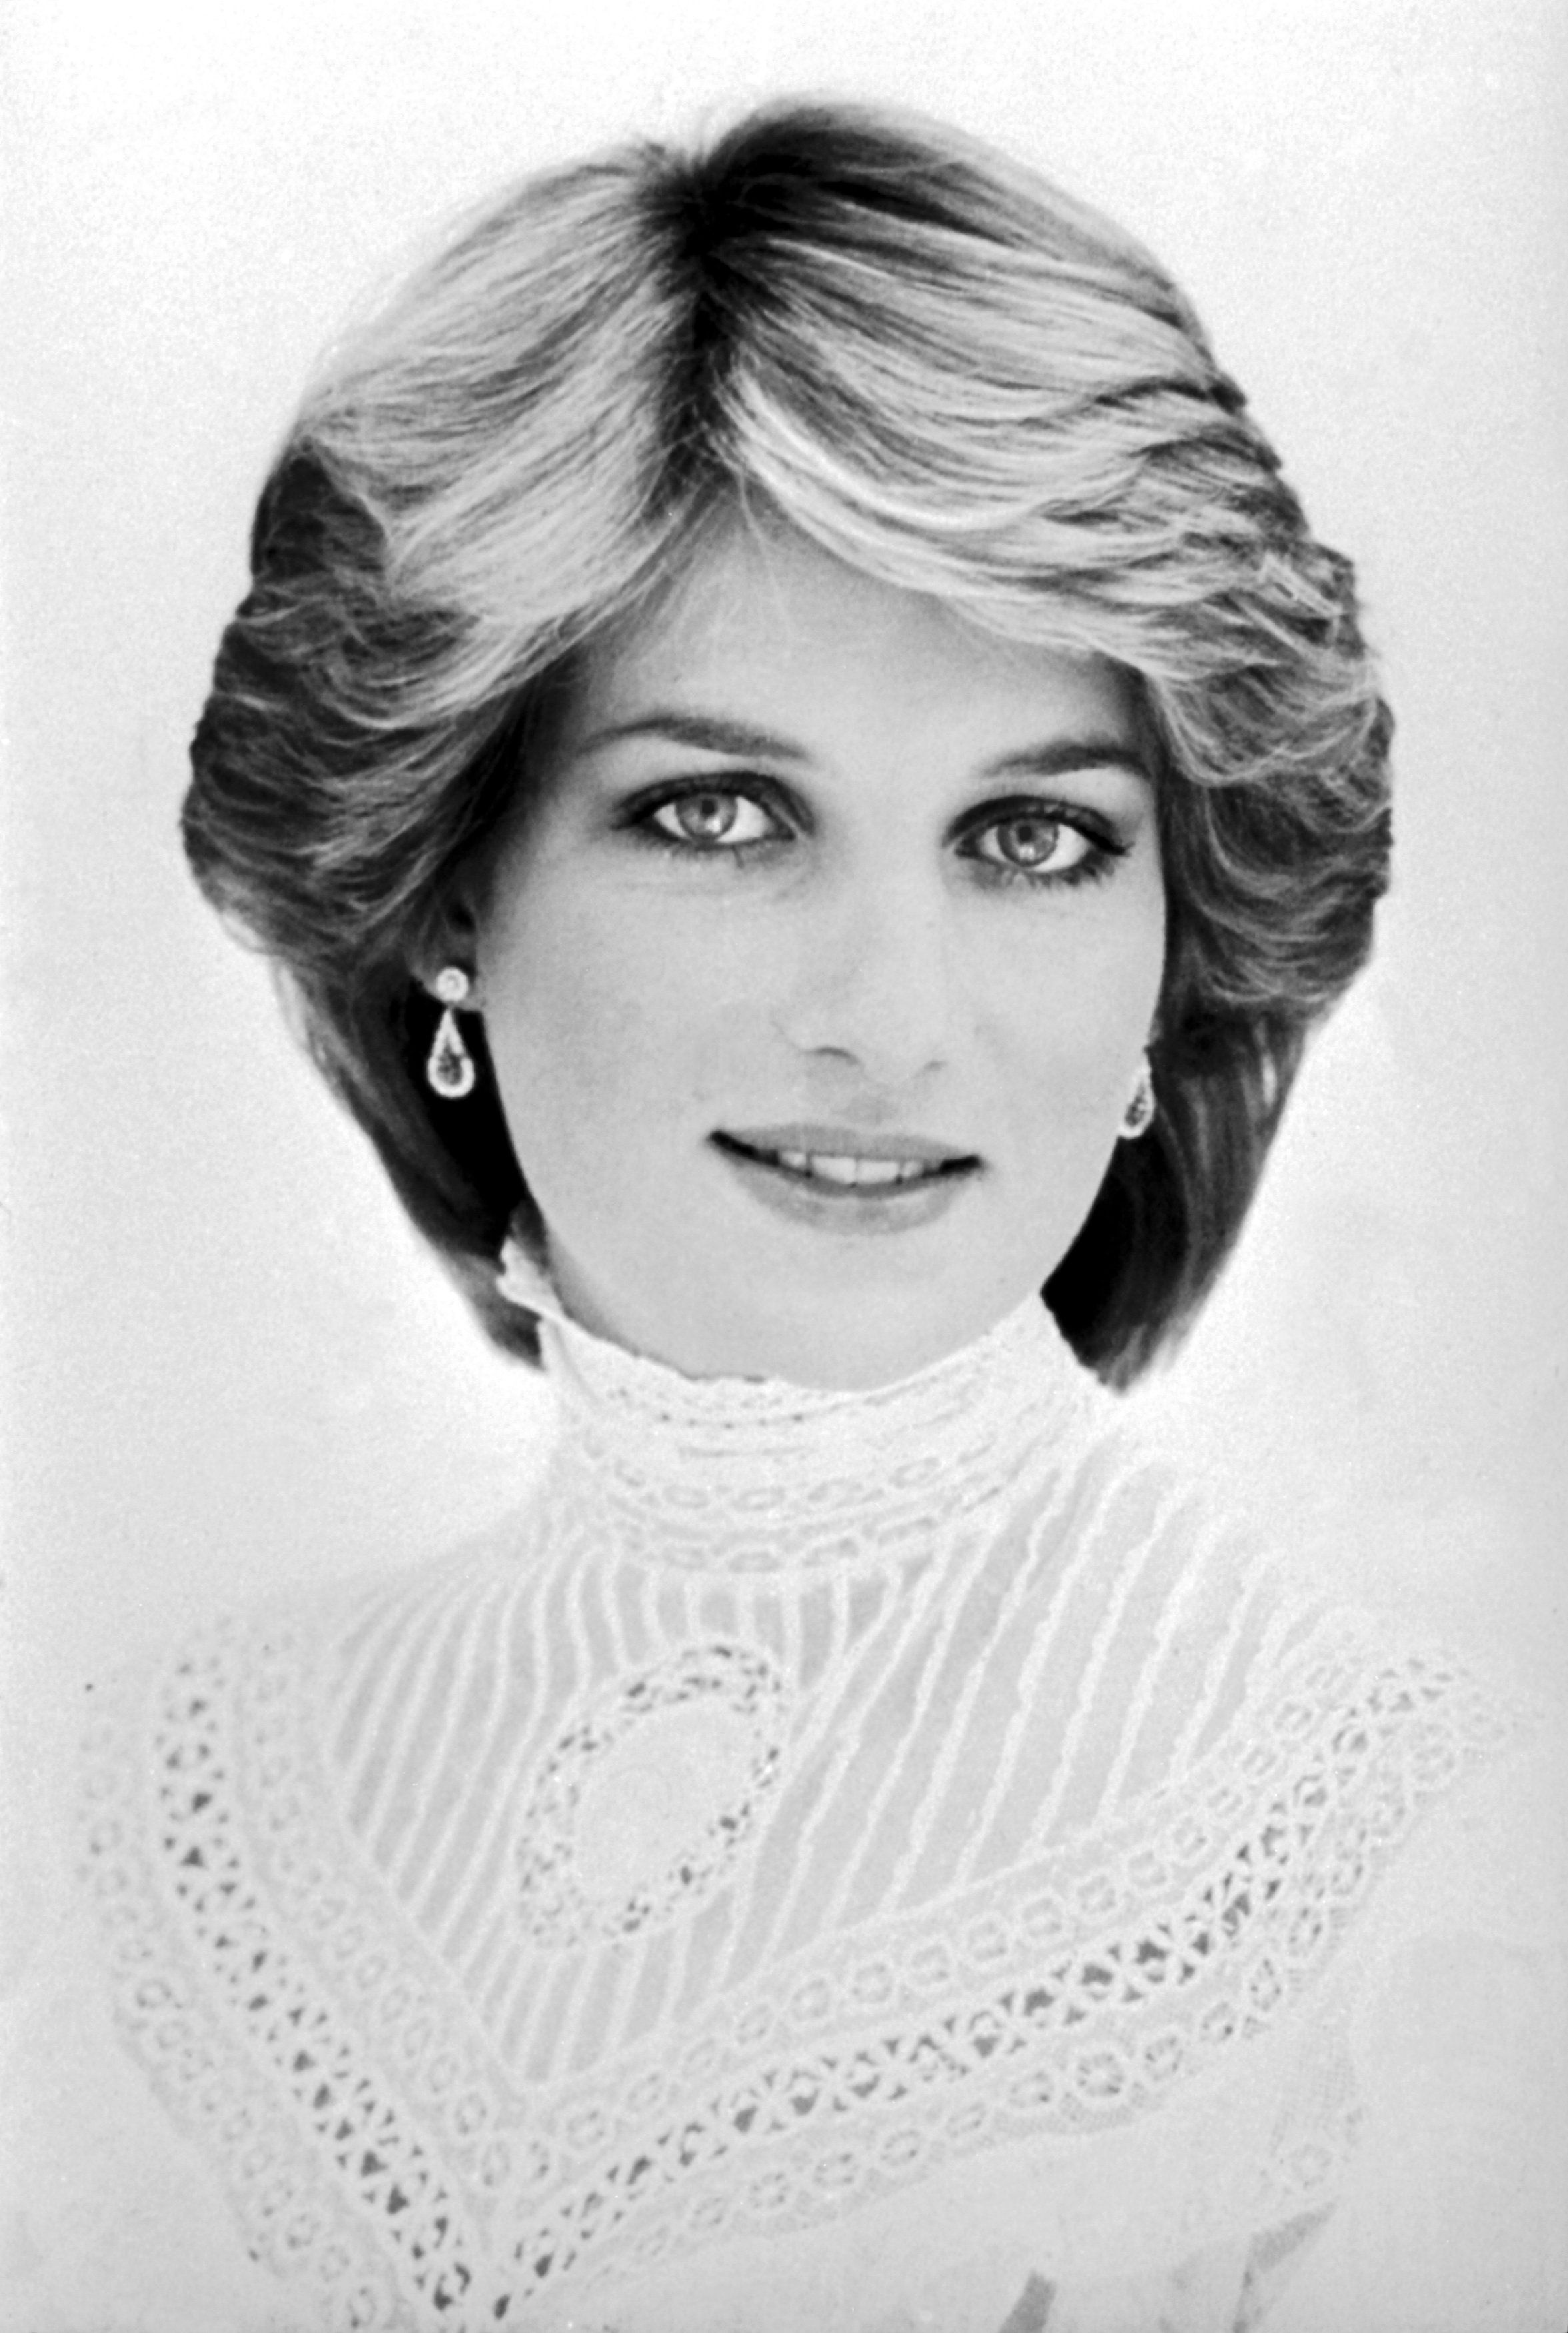 """princess diana as a role model and peoples princess Prince harry reveals why mum princess diana was the ideal 'role model' prince harry glowed with pride when speaking about his late mum princess diana at a summit in chicago – describing her as his """"ideal role model."""